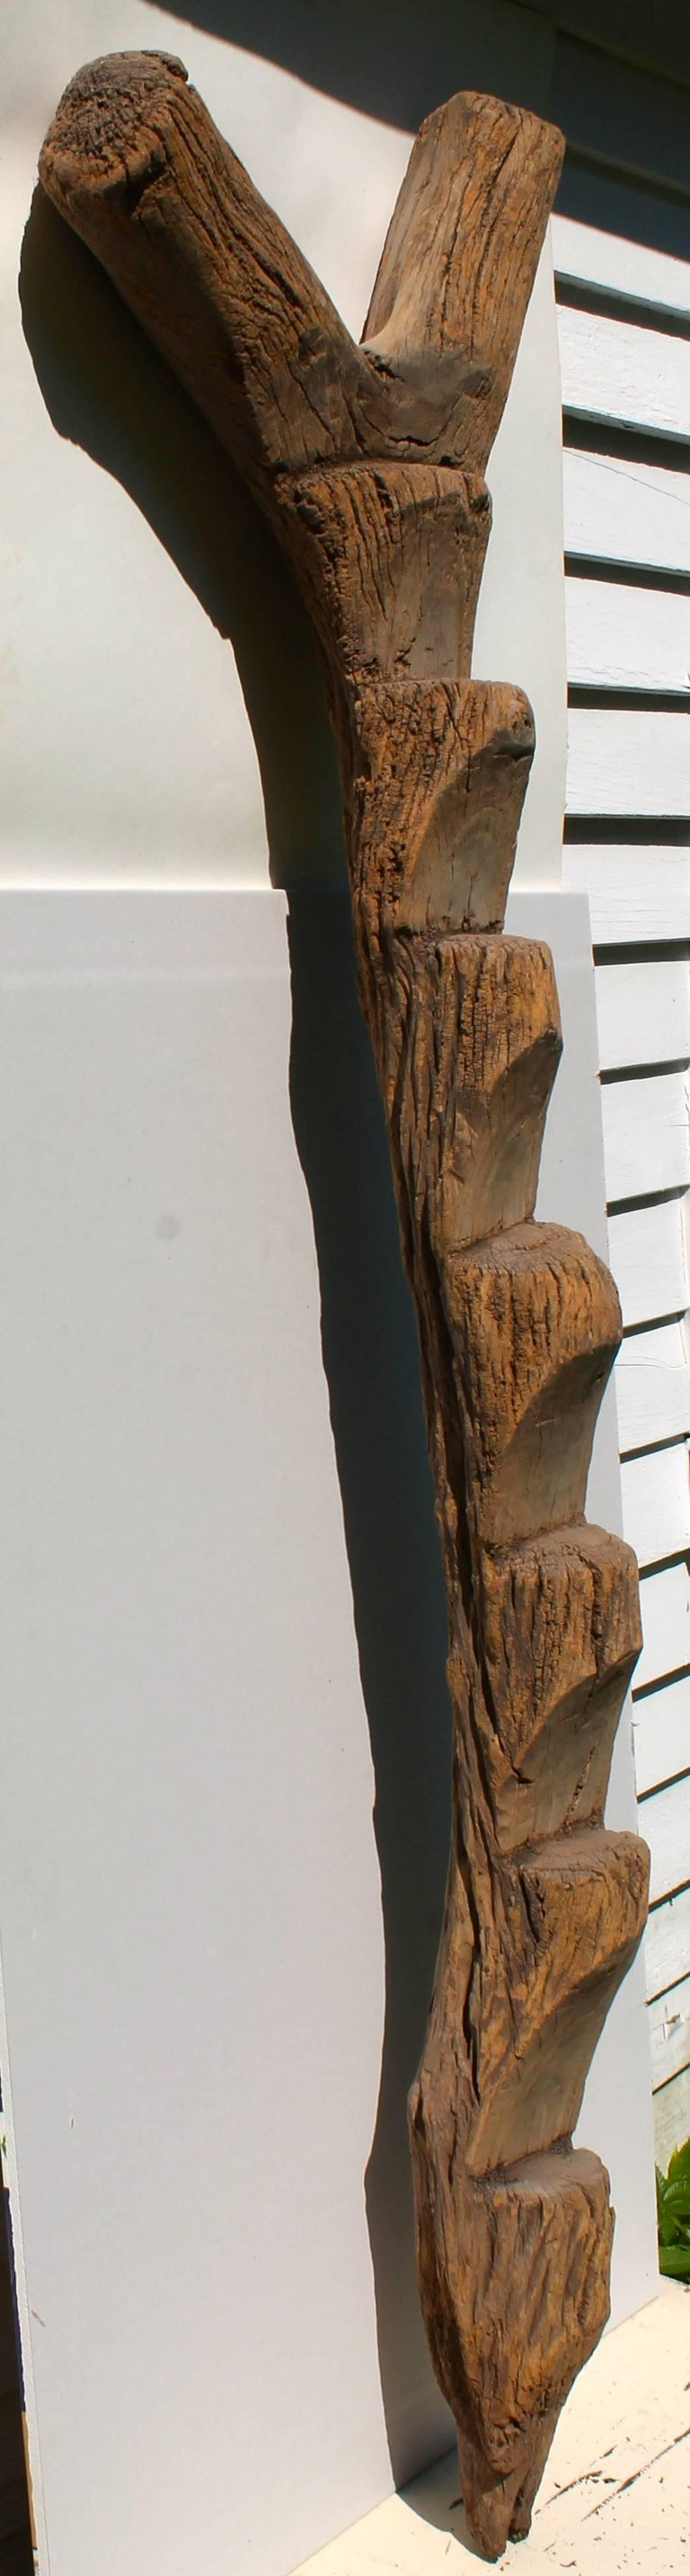 Malian Old Dogon Ladder African Sculpture For Sale